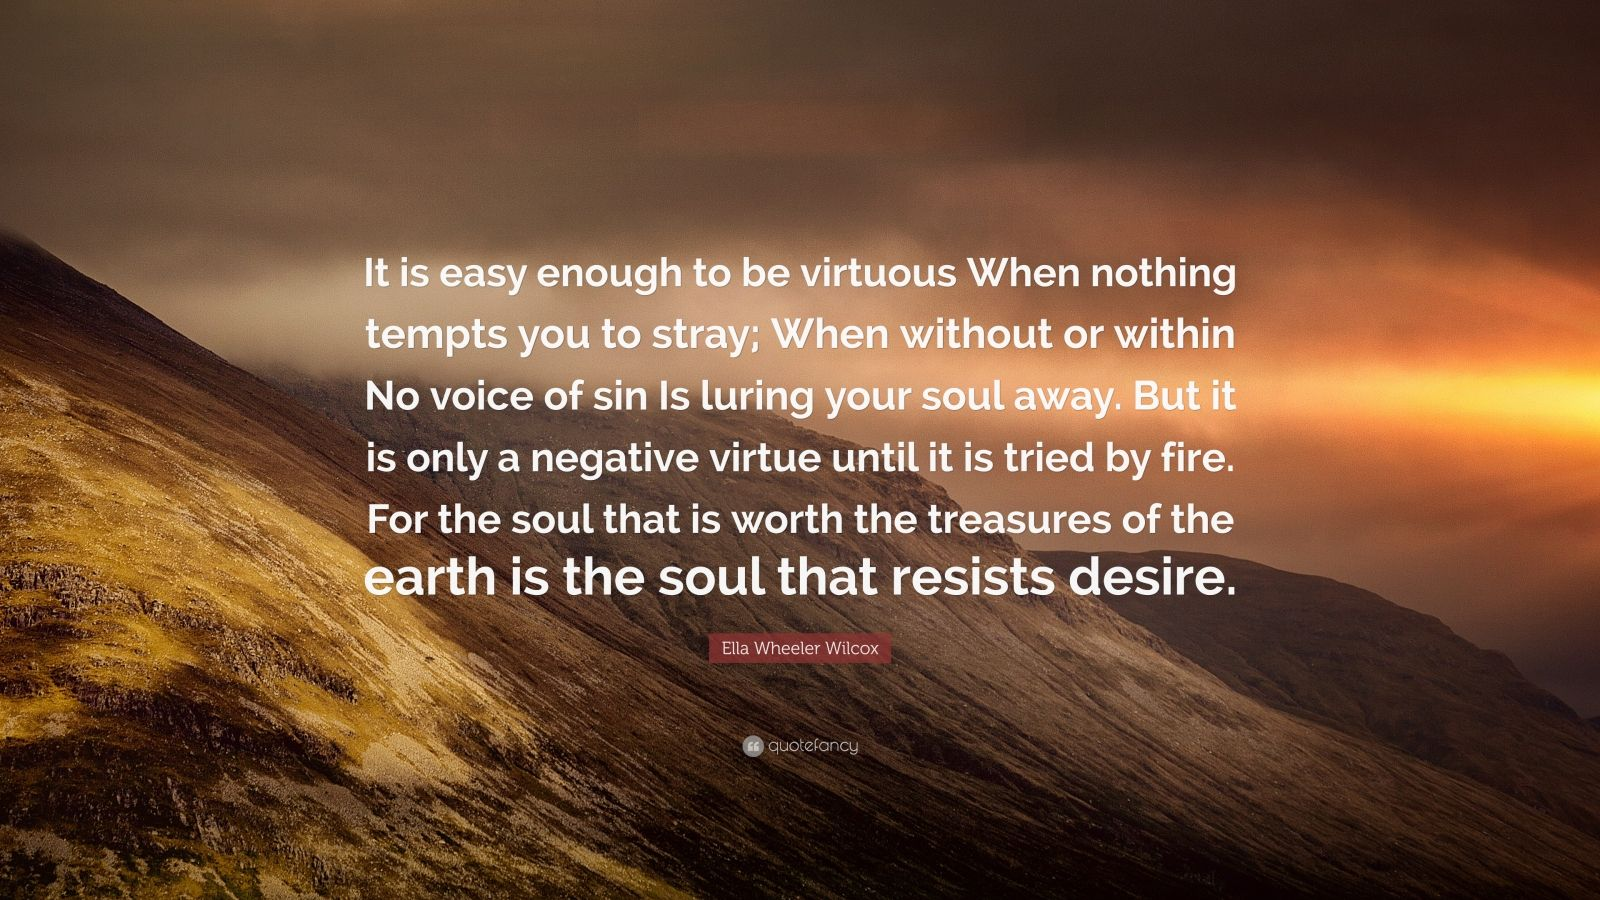 """Ella Wheeler Wilcox Quote: """"It is easy enough to be virtuous When nothing tempts you to stray; When without or within No voice of sin Is luring your soul away. But it is only a negative virtue until it is tried by fire. For the soul that is worth the treasures of the earth is the soul that resists desire."""""""